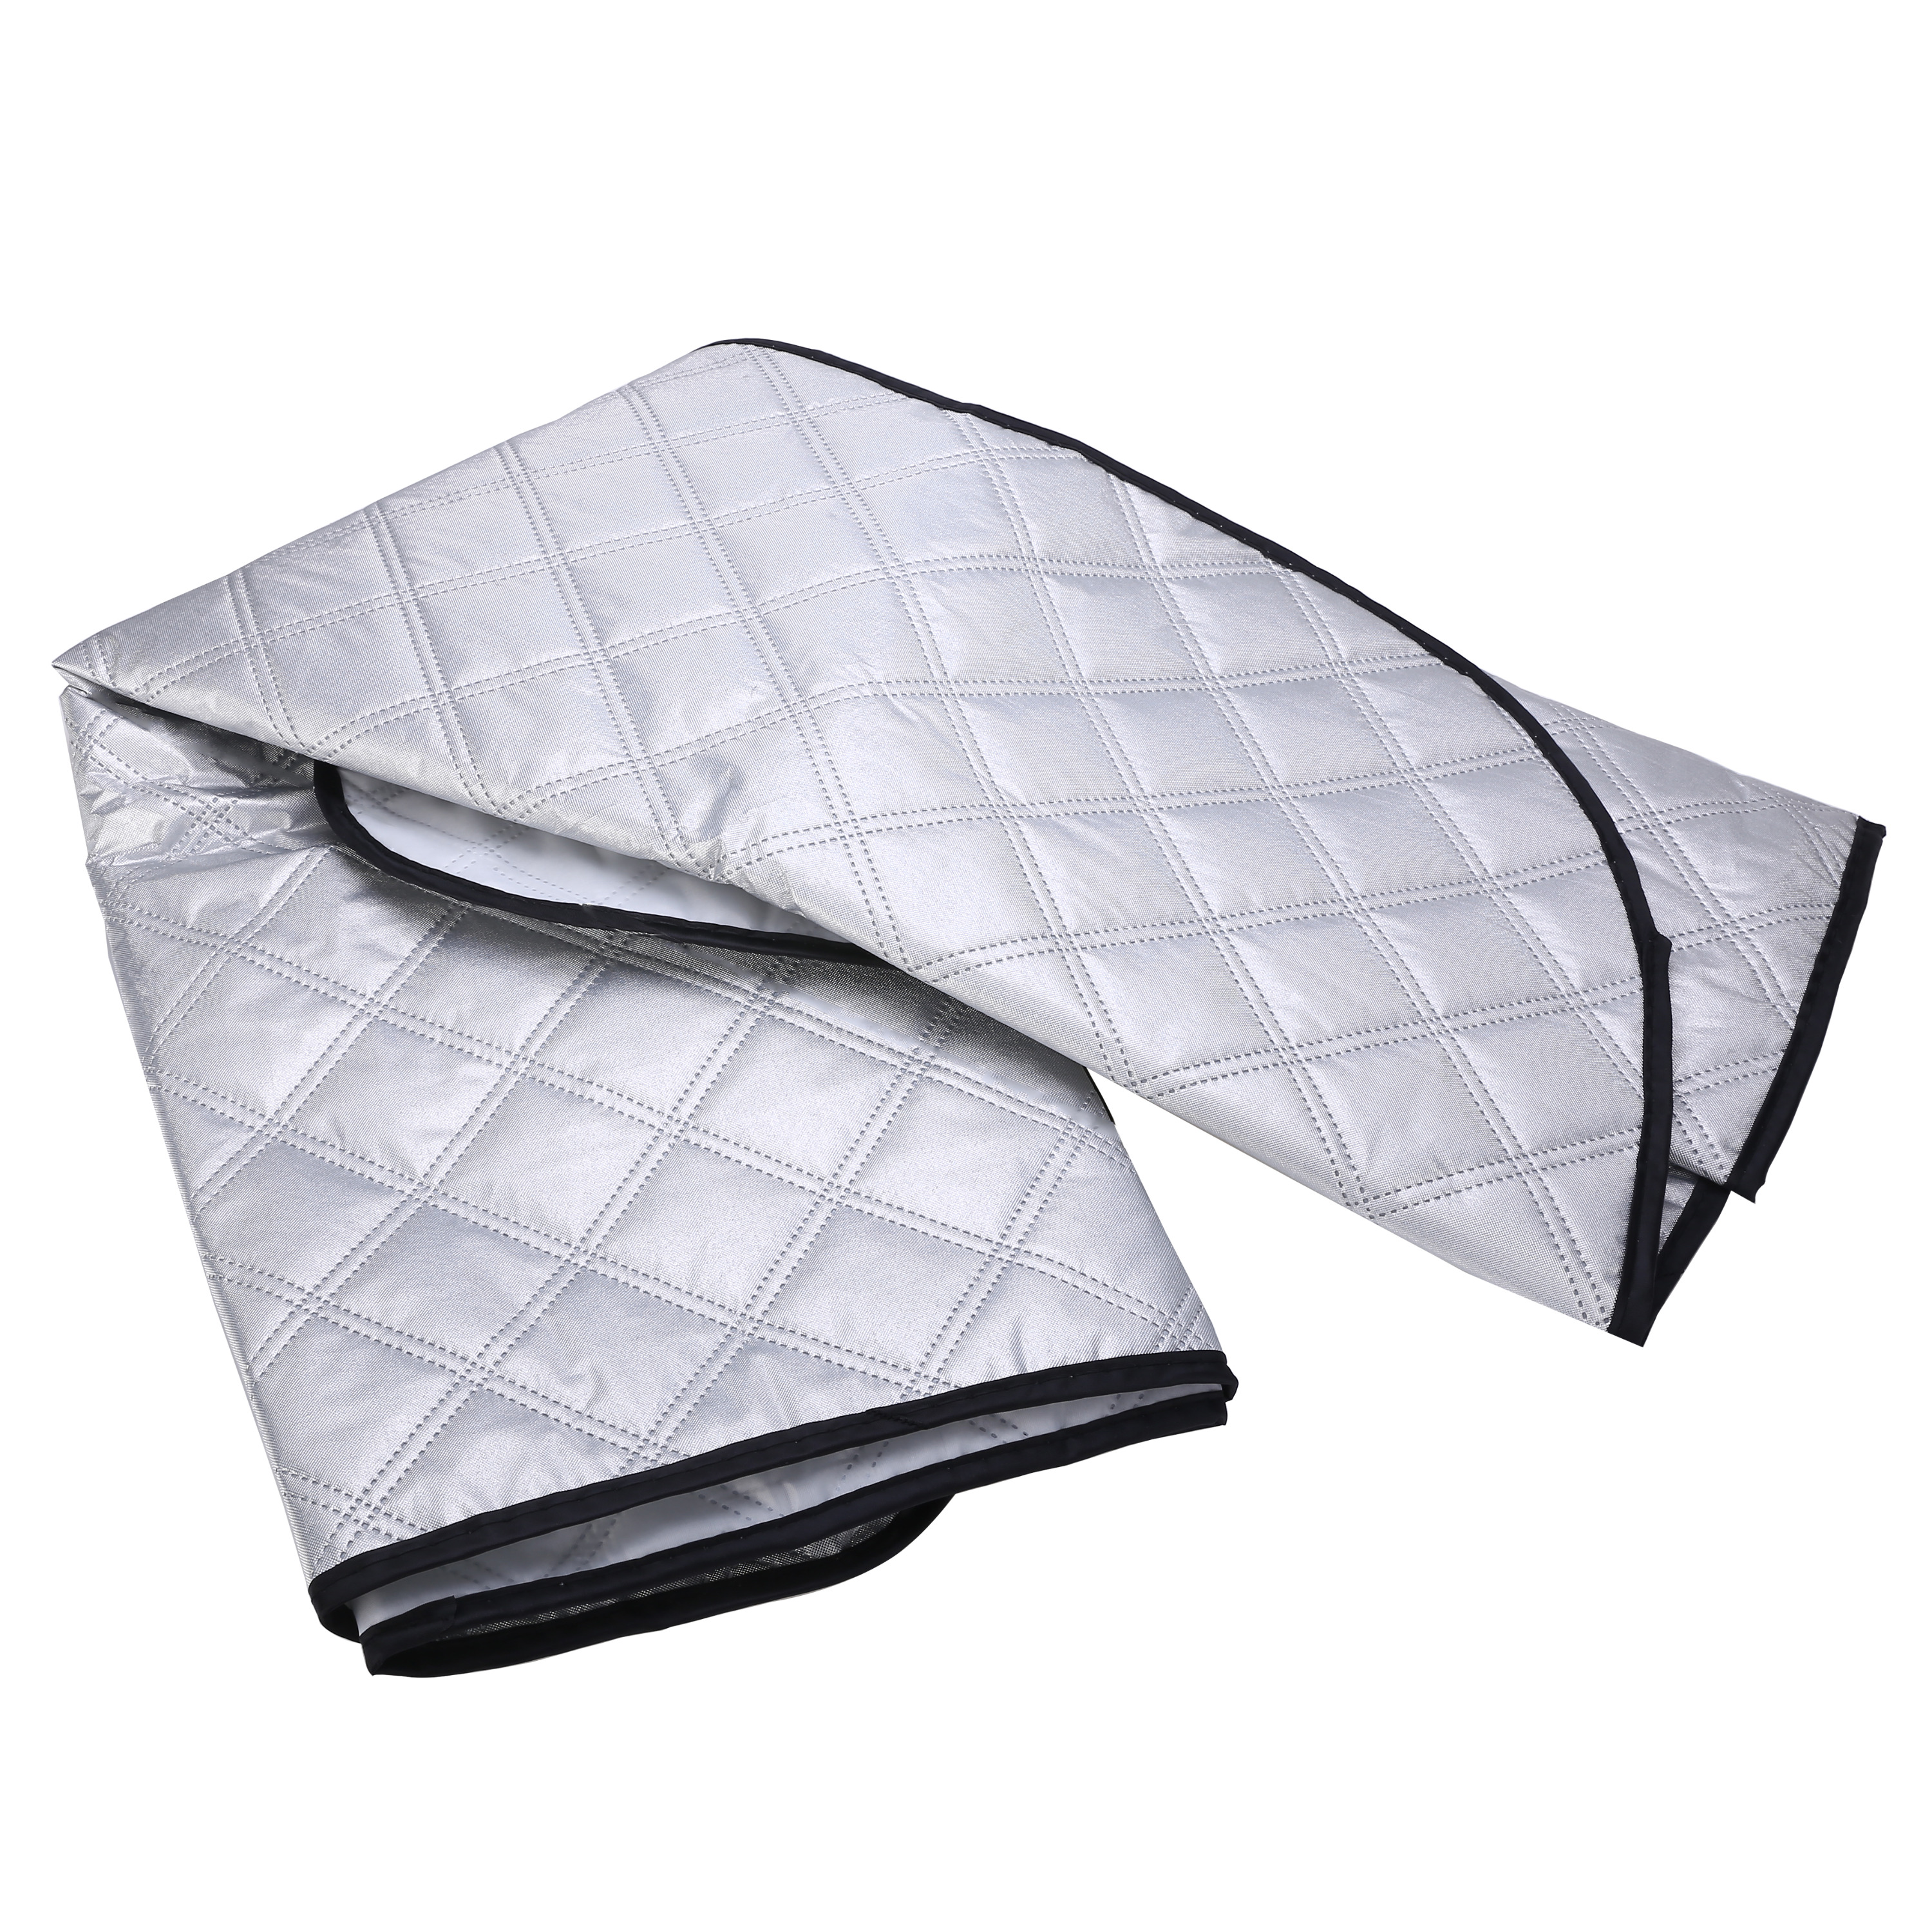 100 147CM Car Exterior Protection Snow Blocked Car Covers Snow Ice Protector Visor Sun Shade Windshield Cover Block Shields in Car Covers from Automobiles Motorcycles